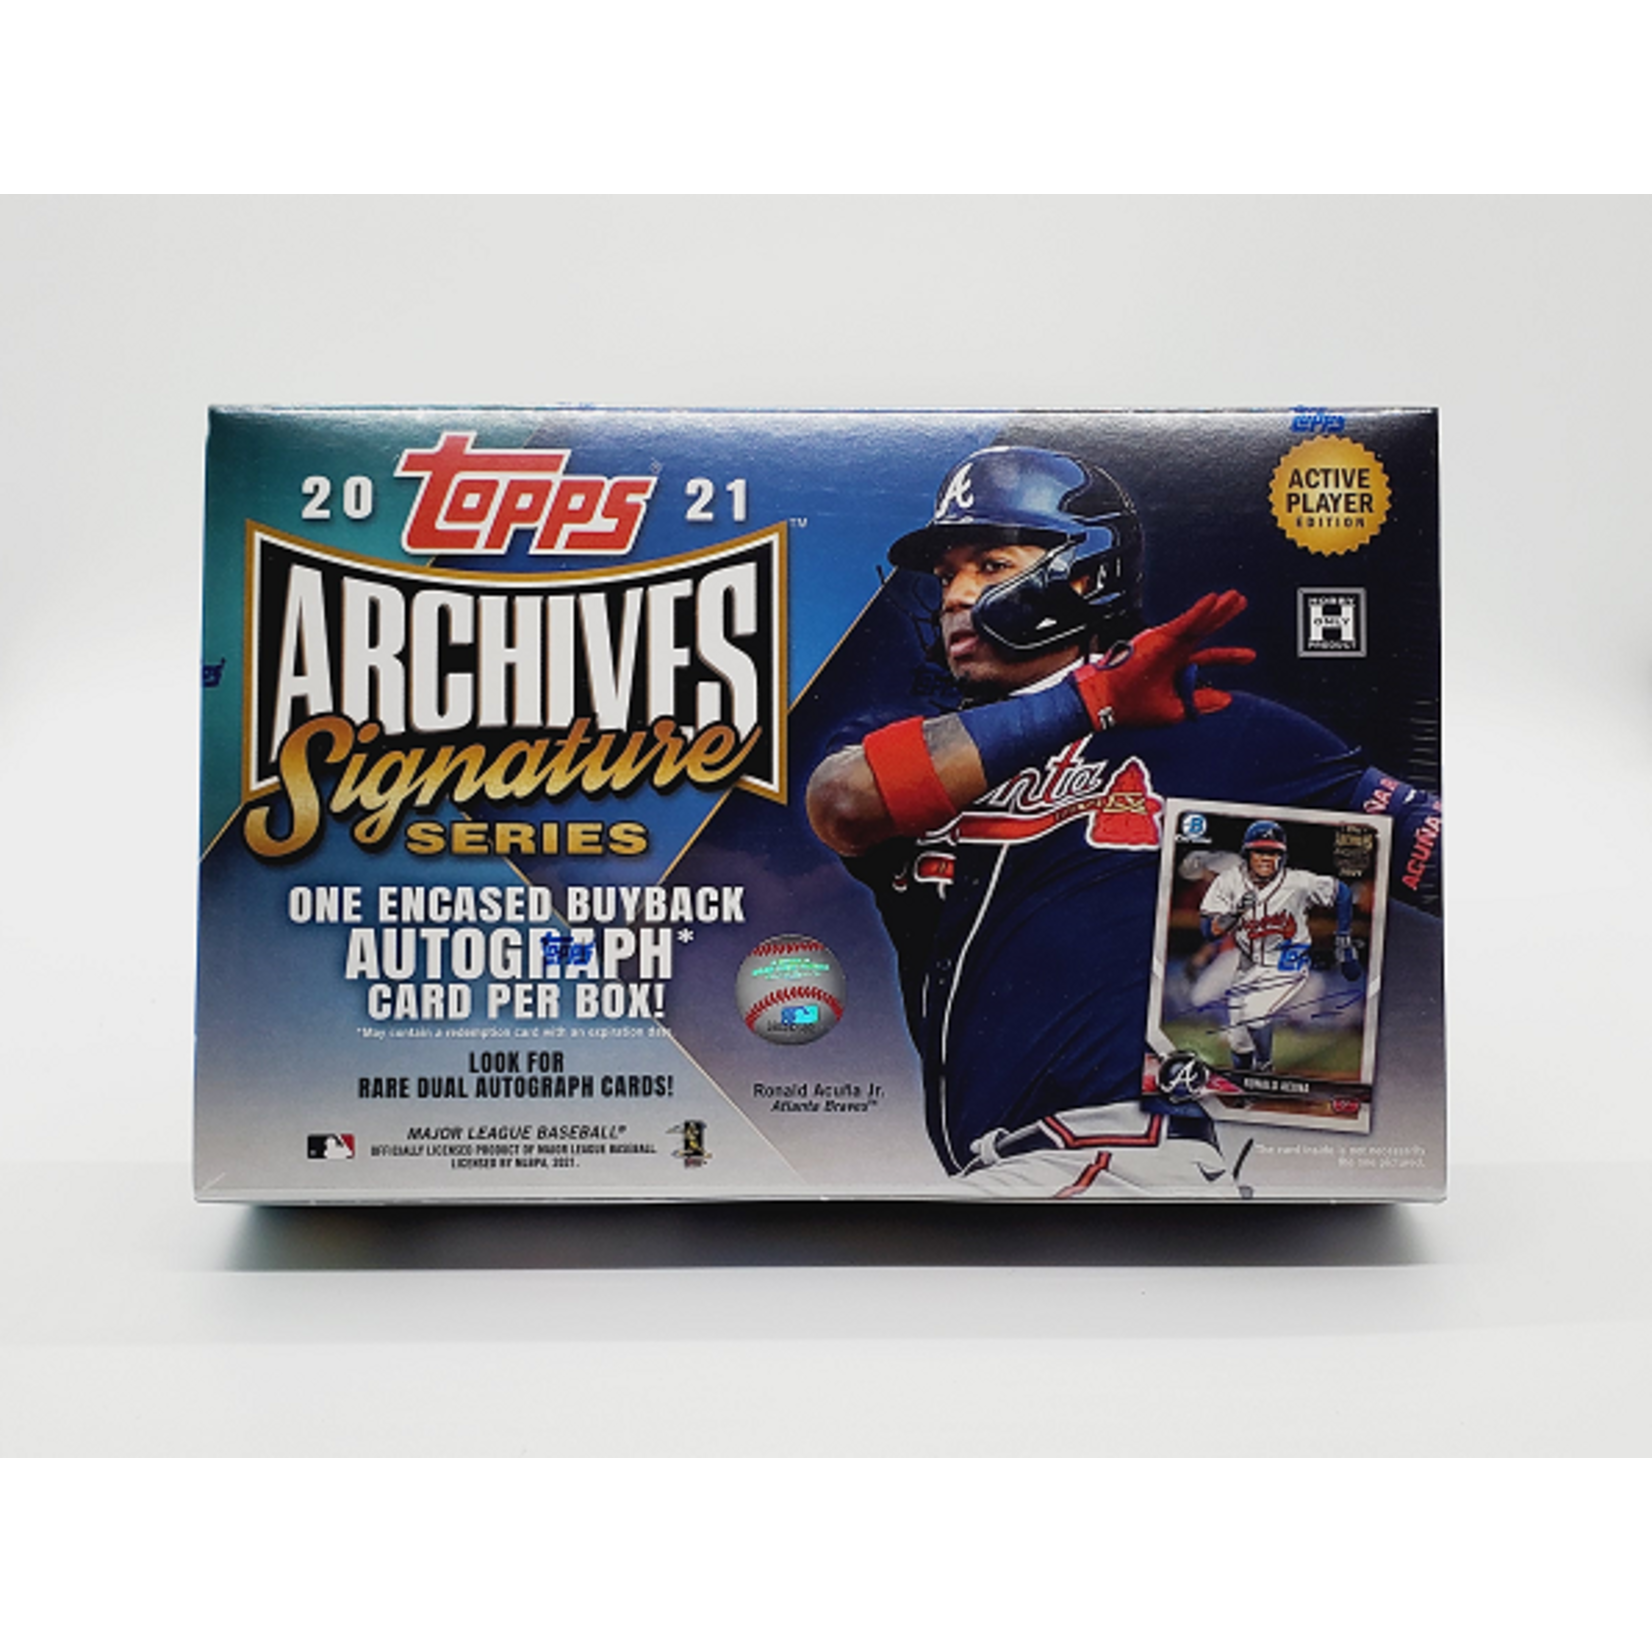 Topps 2021 Topps Archives Signatures Series Baseball - Active Hobby Box